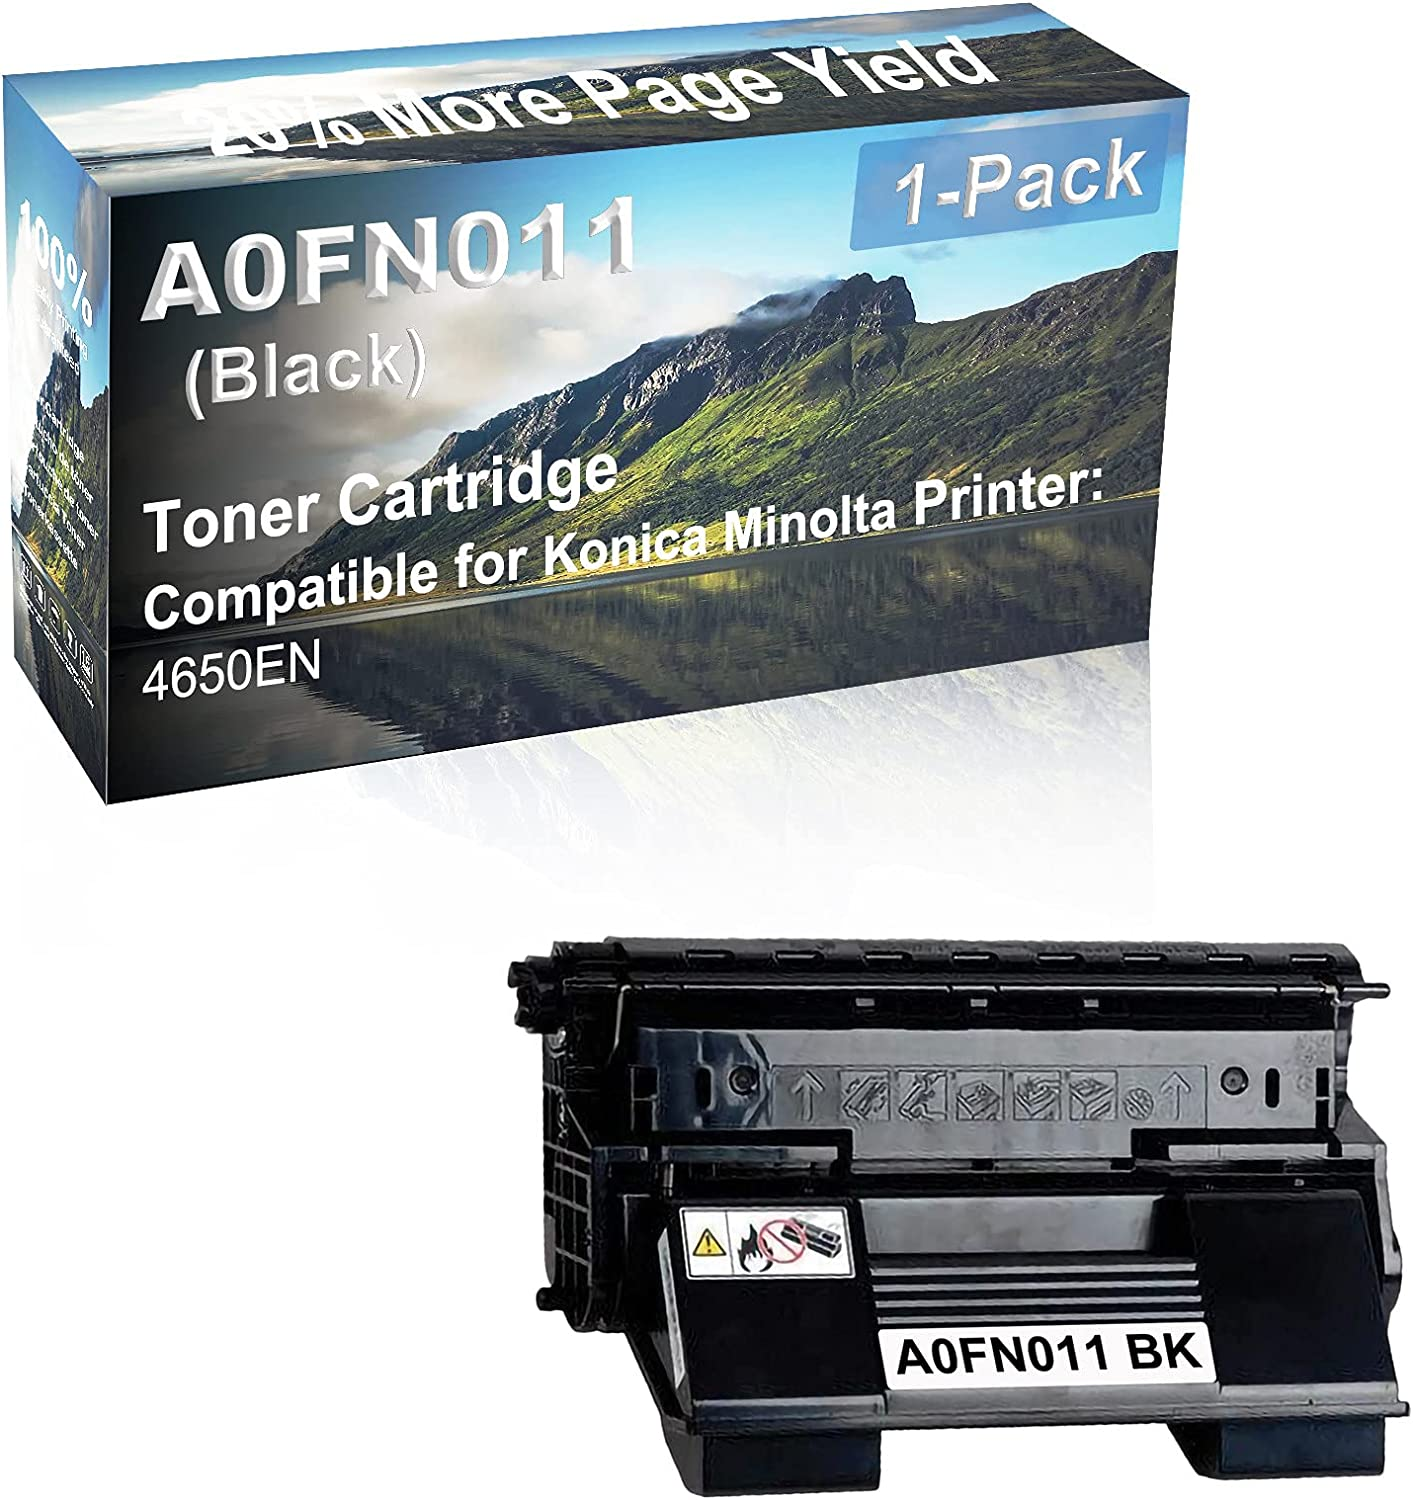 1-Pack Compatible High Capacity A0FN011 Toner Cartridge use for Konica Minolta PagePro 4650EN Printer (Black)